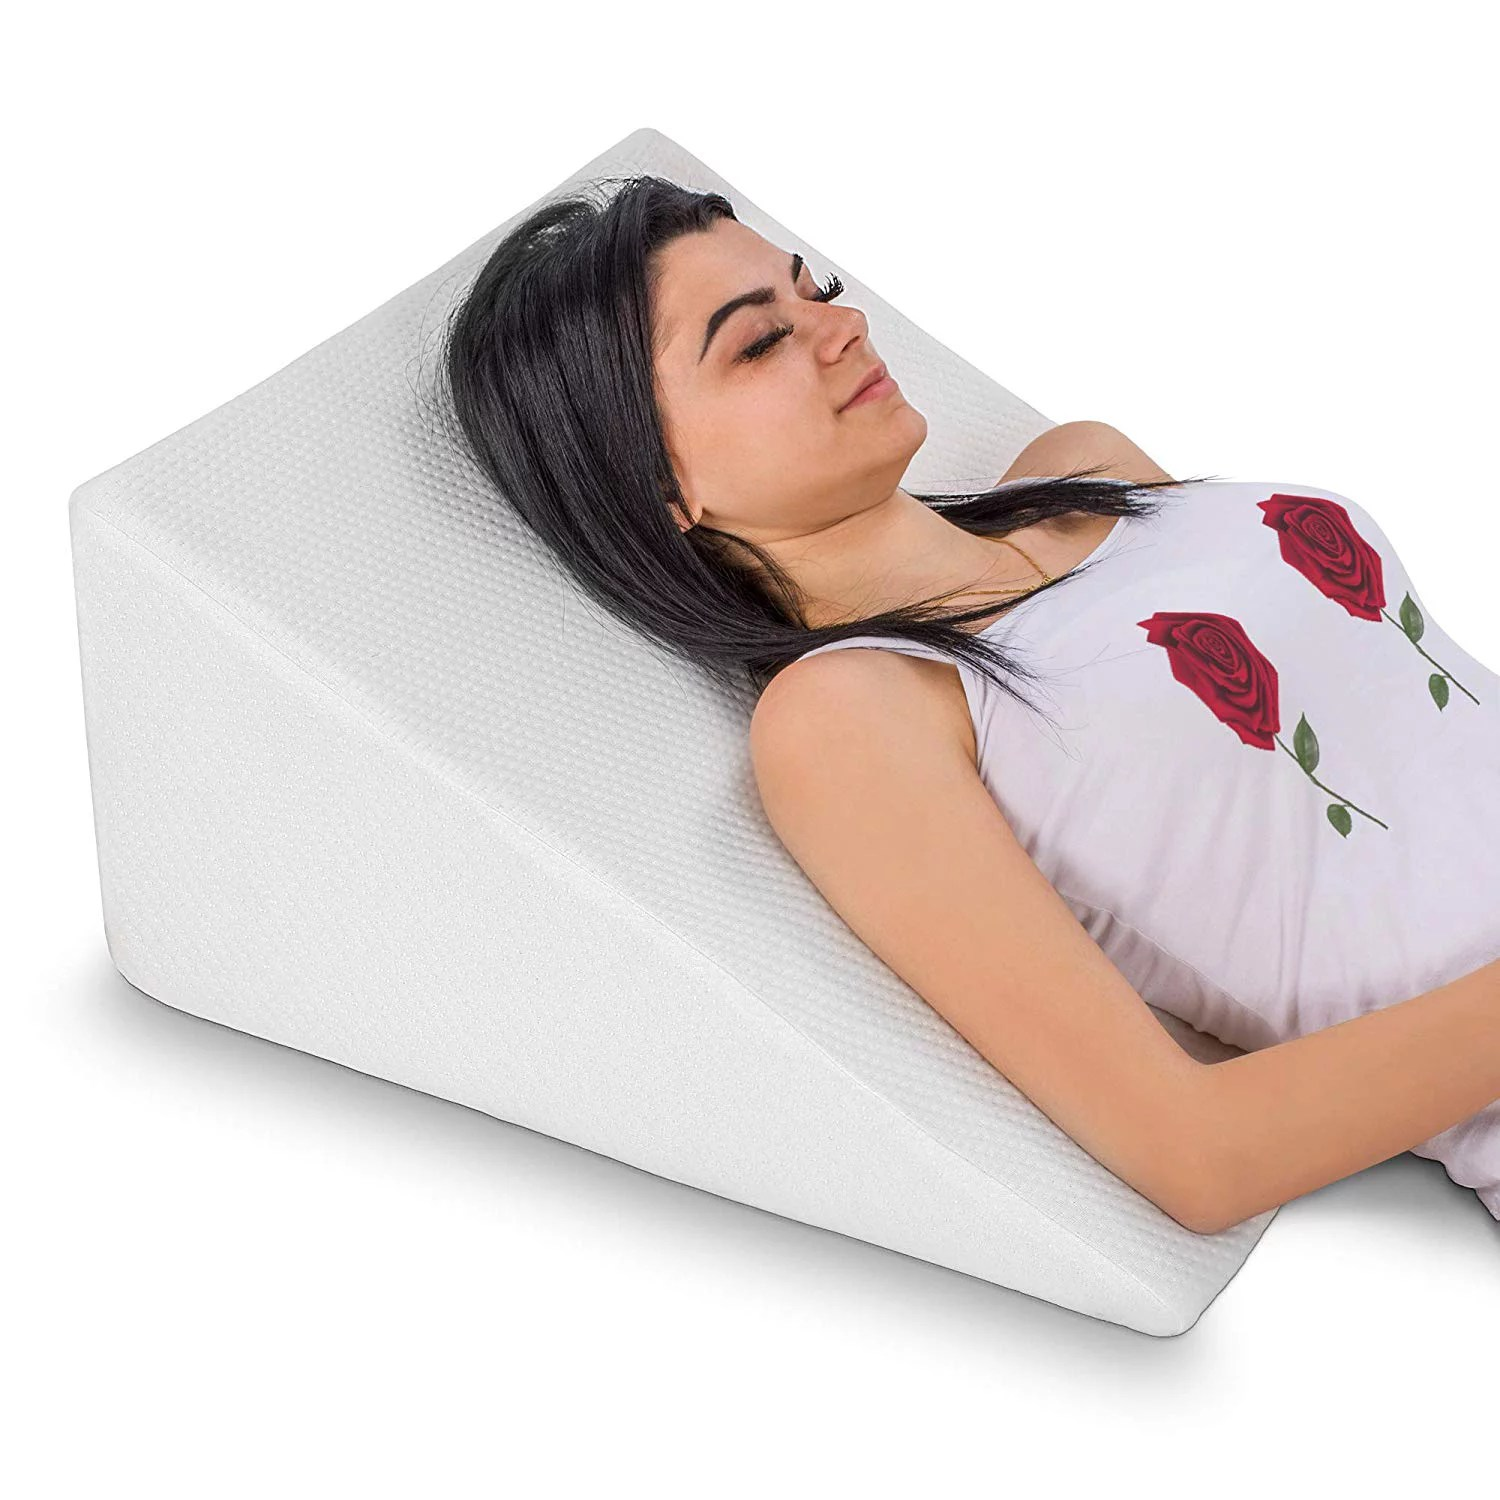 abco tech bed wedge pillow memory foam top reduce back pain snoring 12 height white